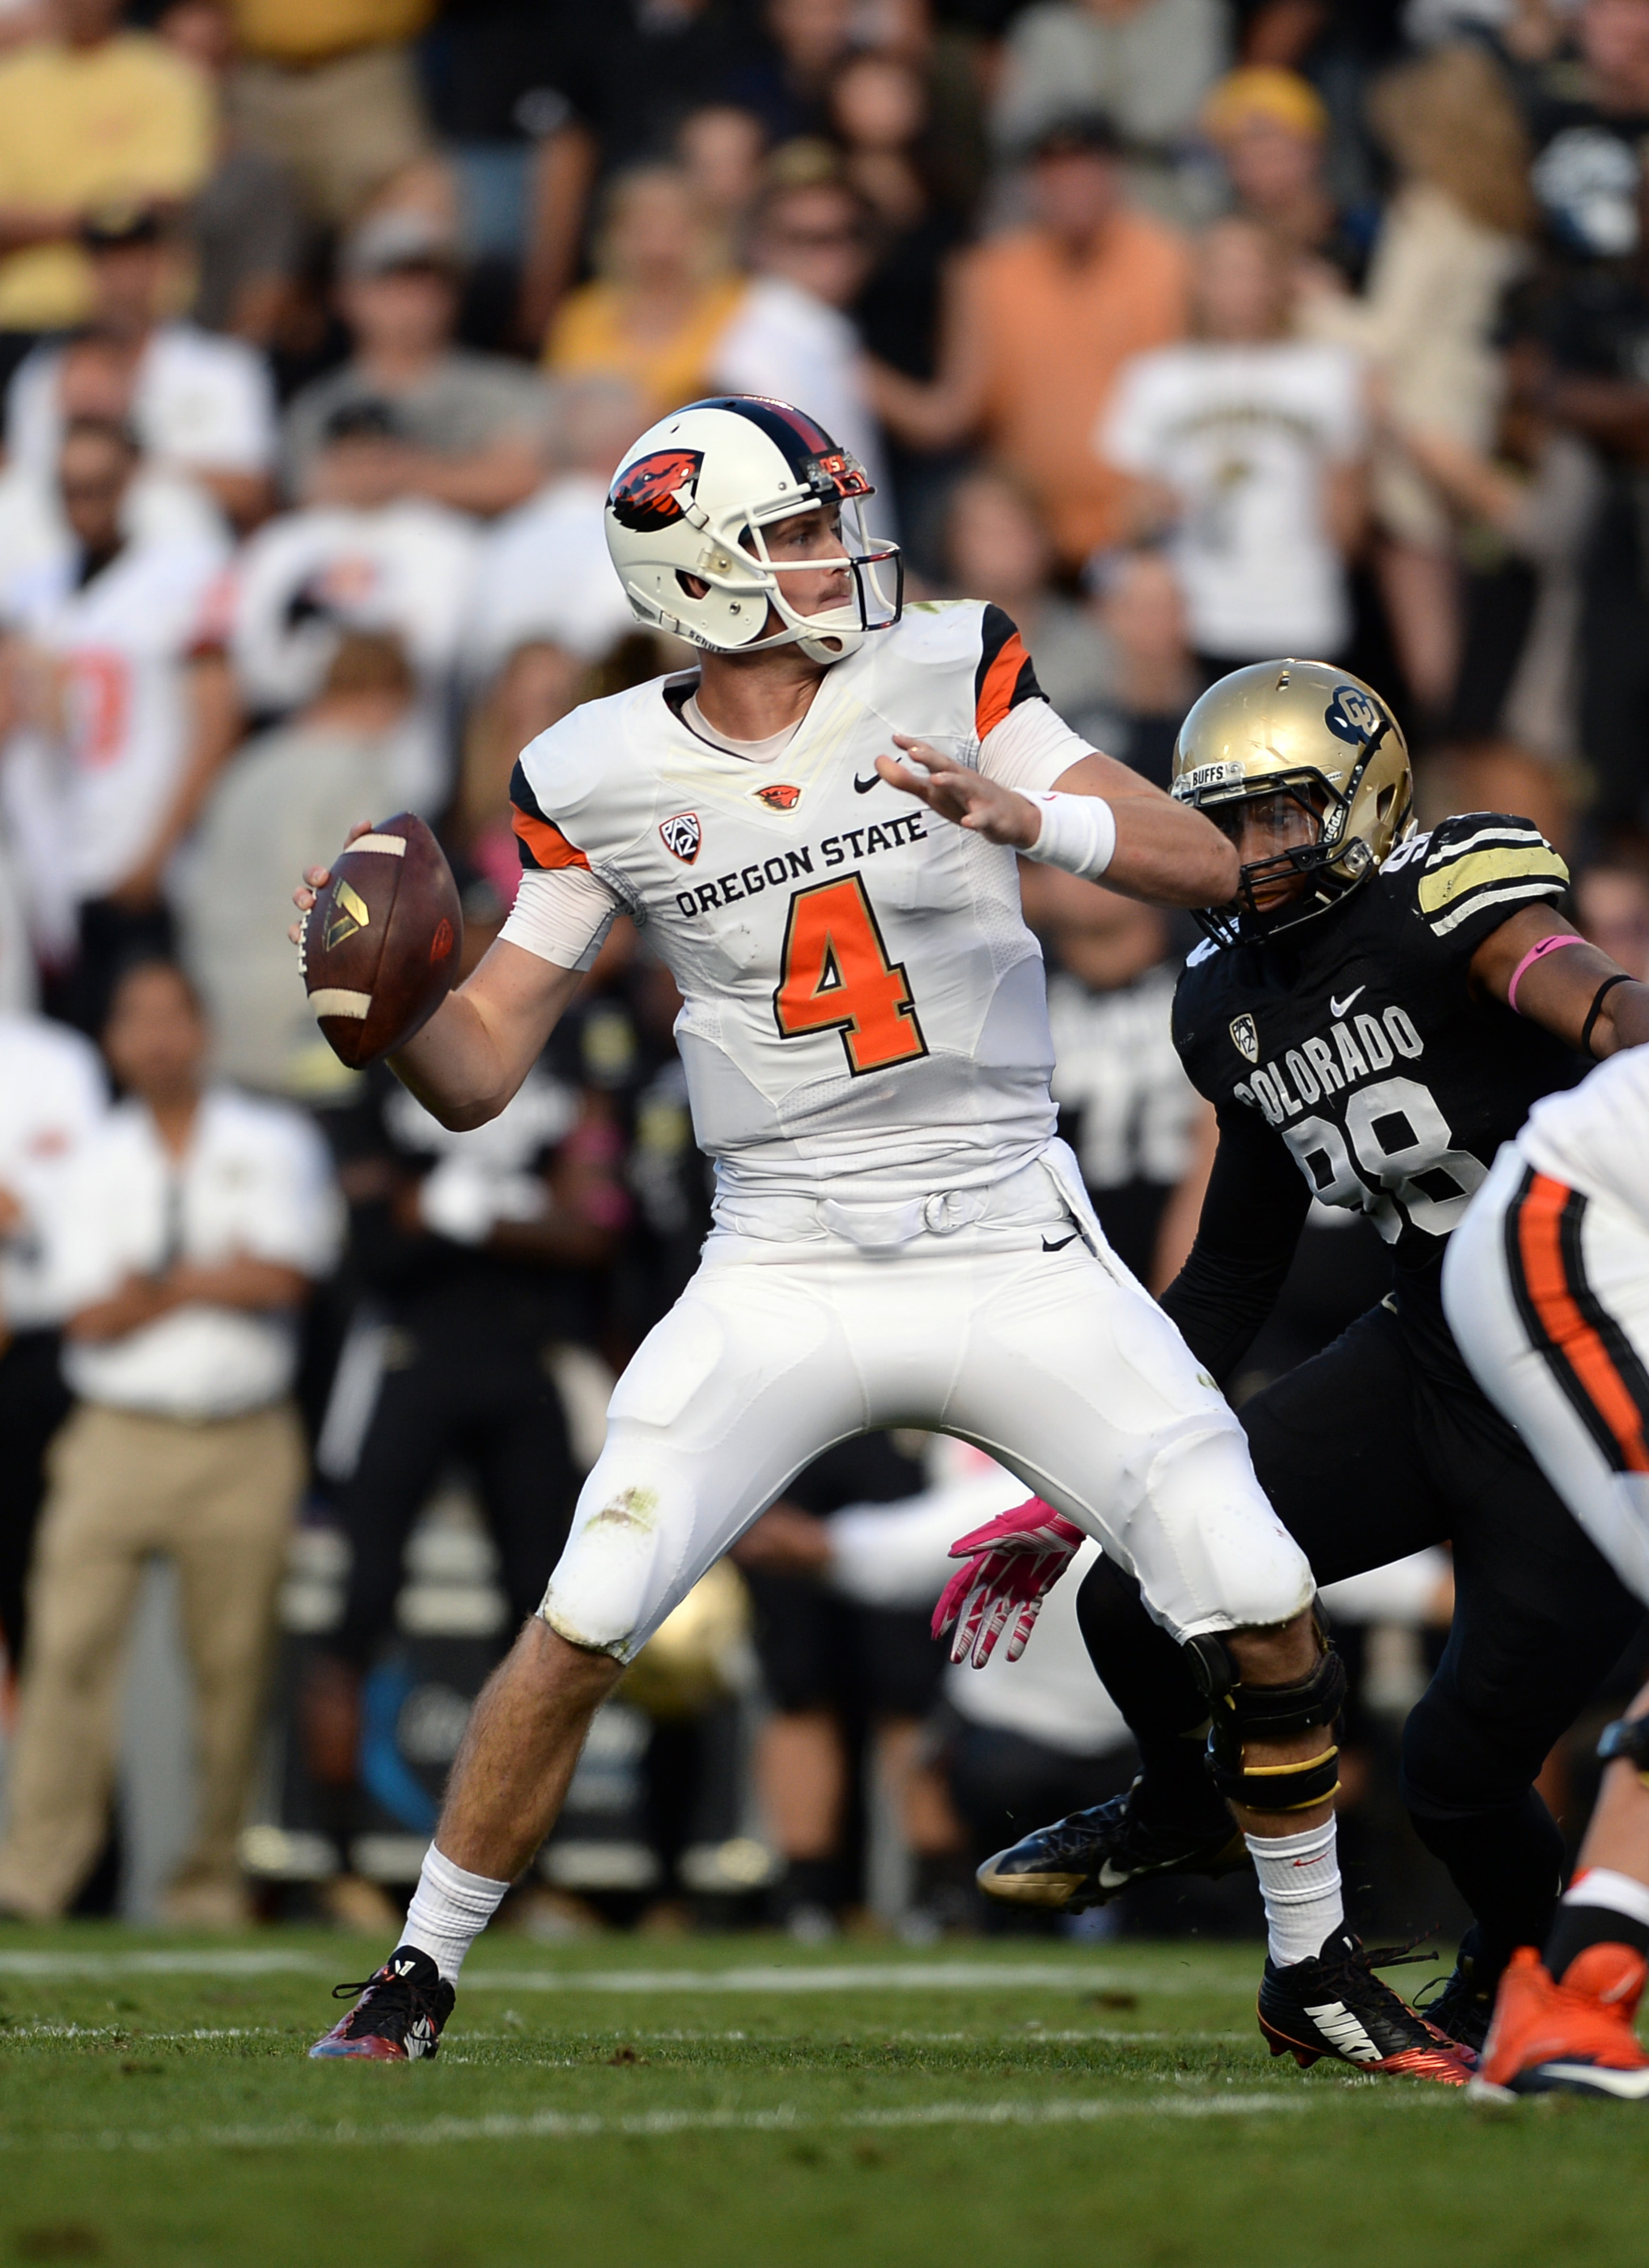 The Utah defense will be especially wary of Oregon State quarterback Sean Mannion, who last season torched the Utes for 443 yards passing and five touchdowns.